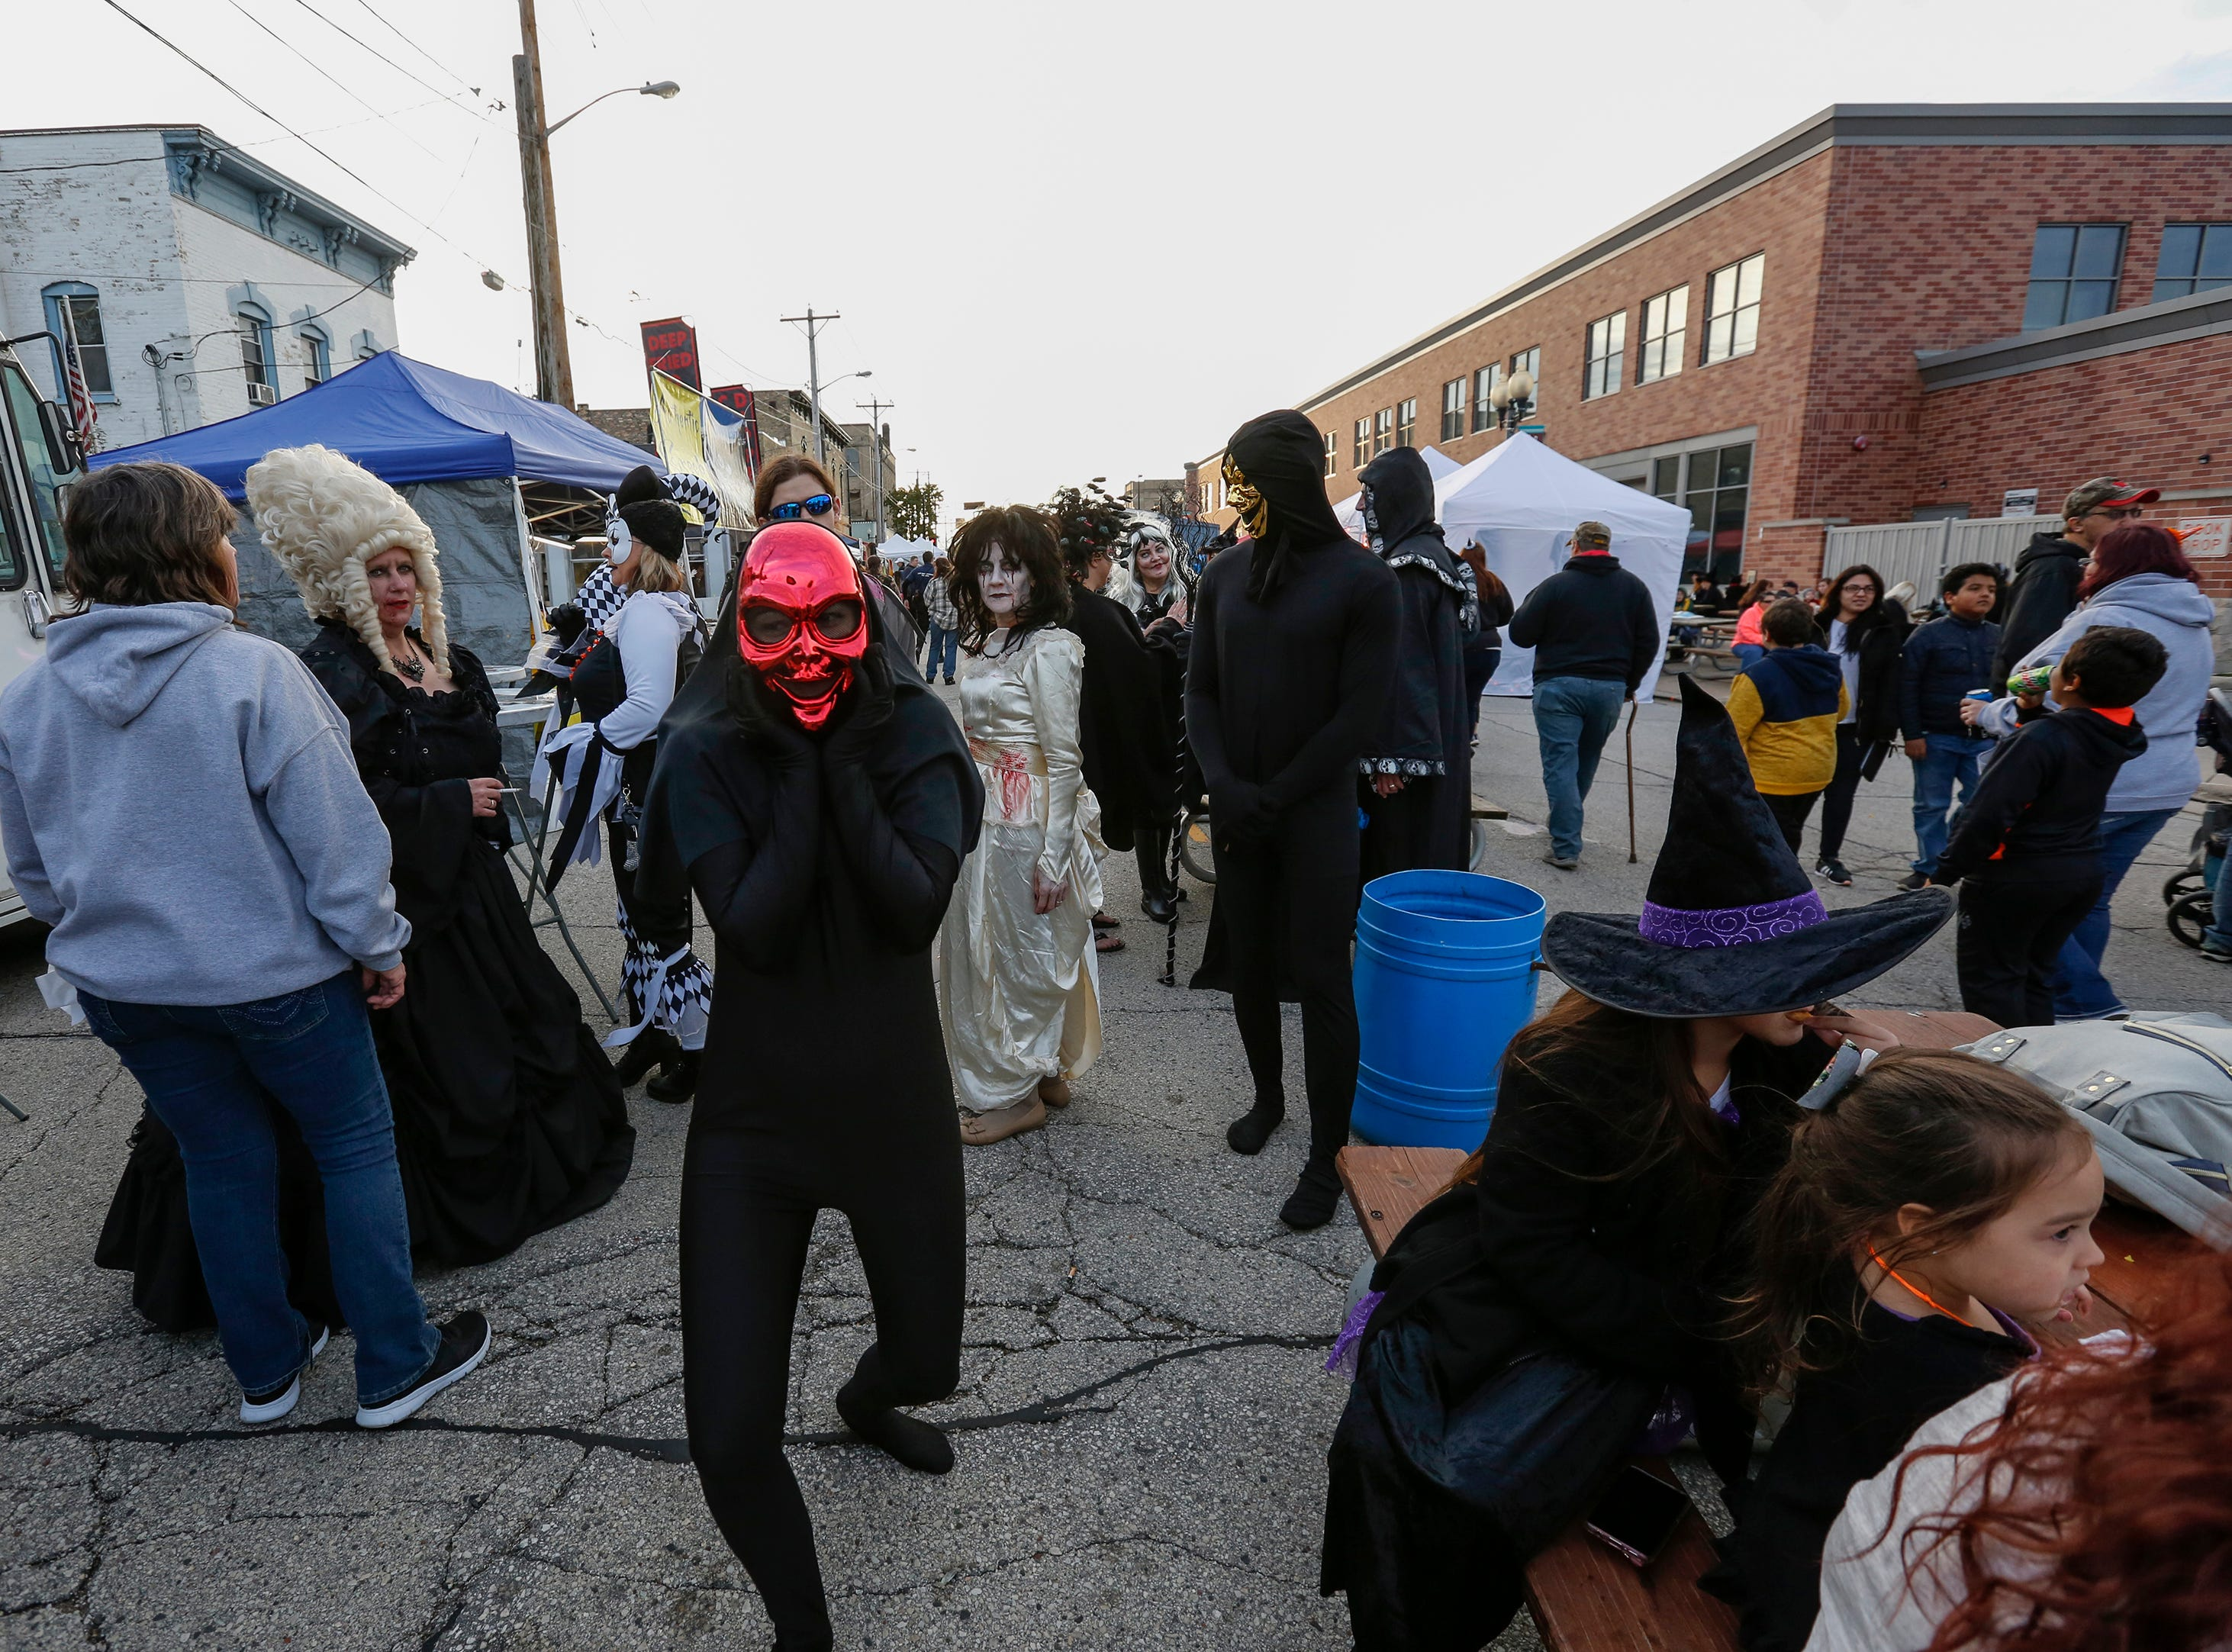 Scenes from Windigo Fest on Saturday, Oct. 6, 2018, in Manitowoc, Wis.